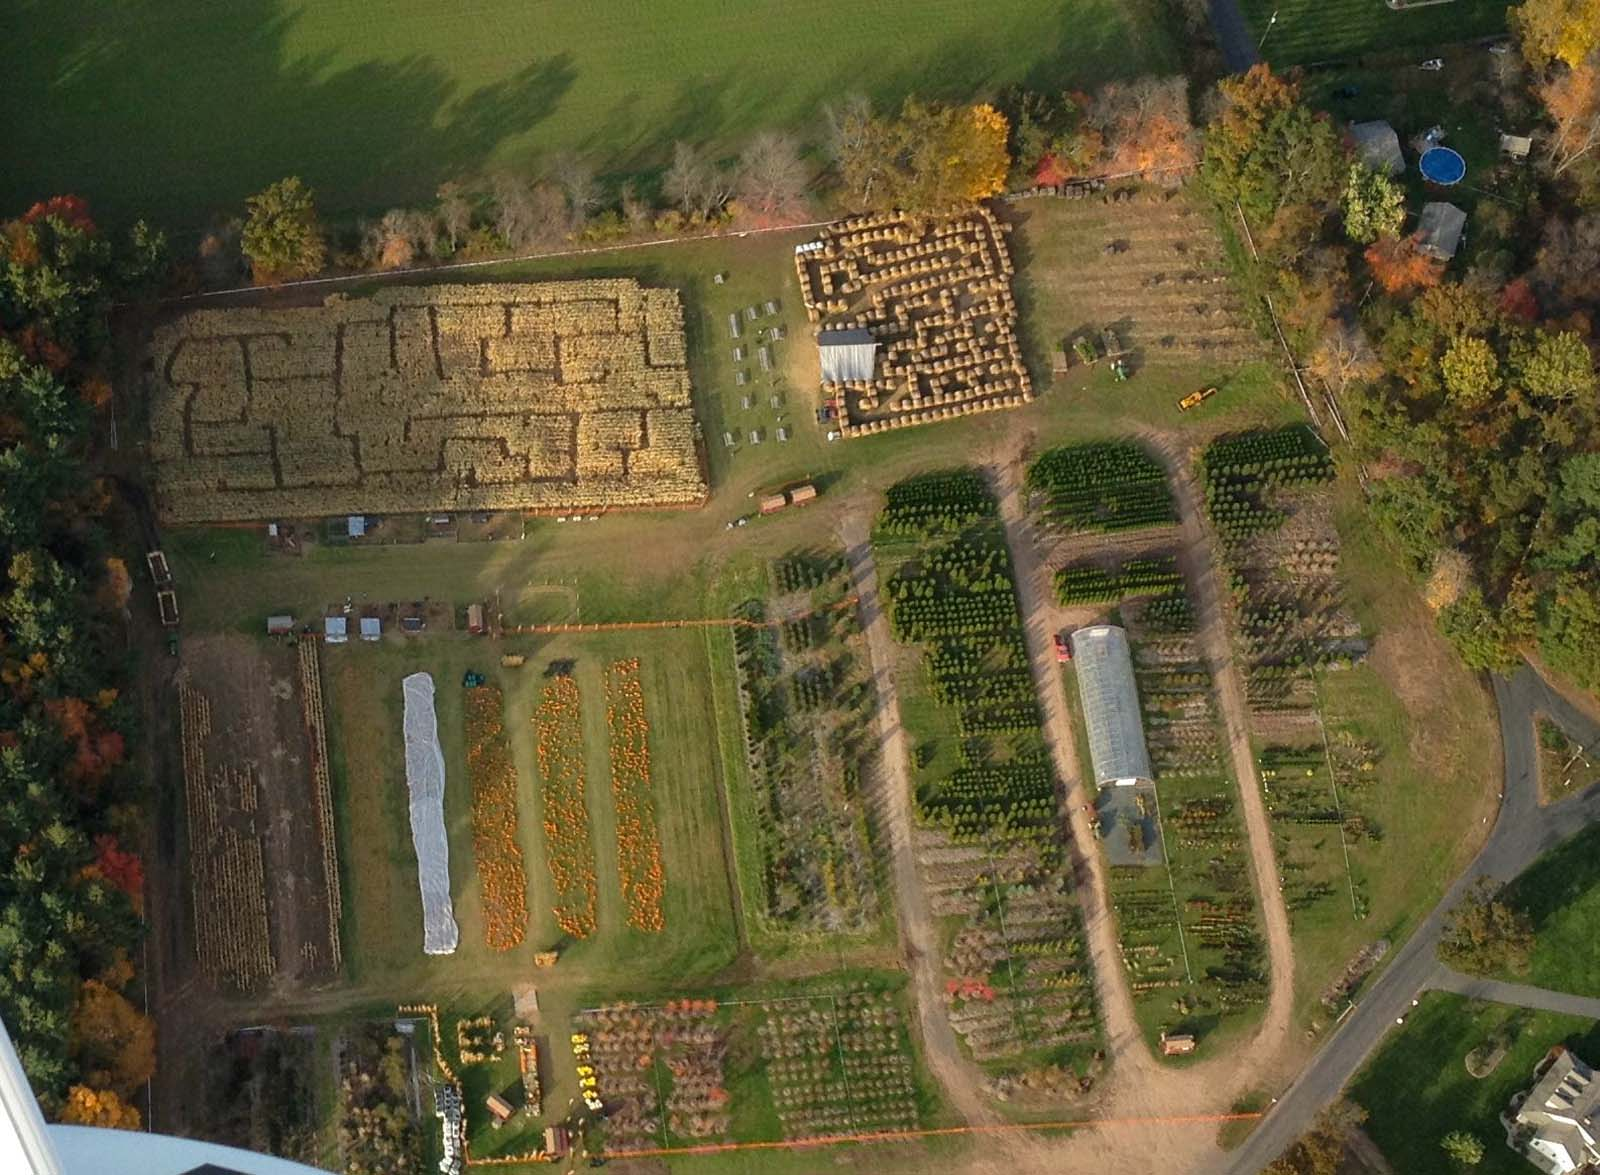 Arial View of Pumpkins